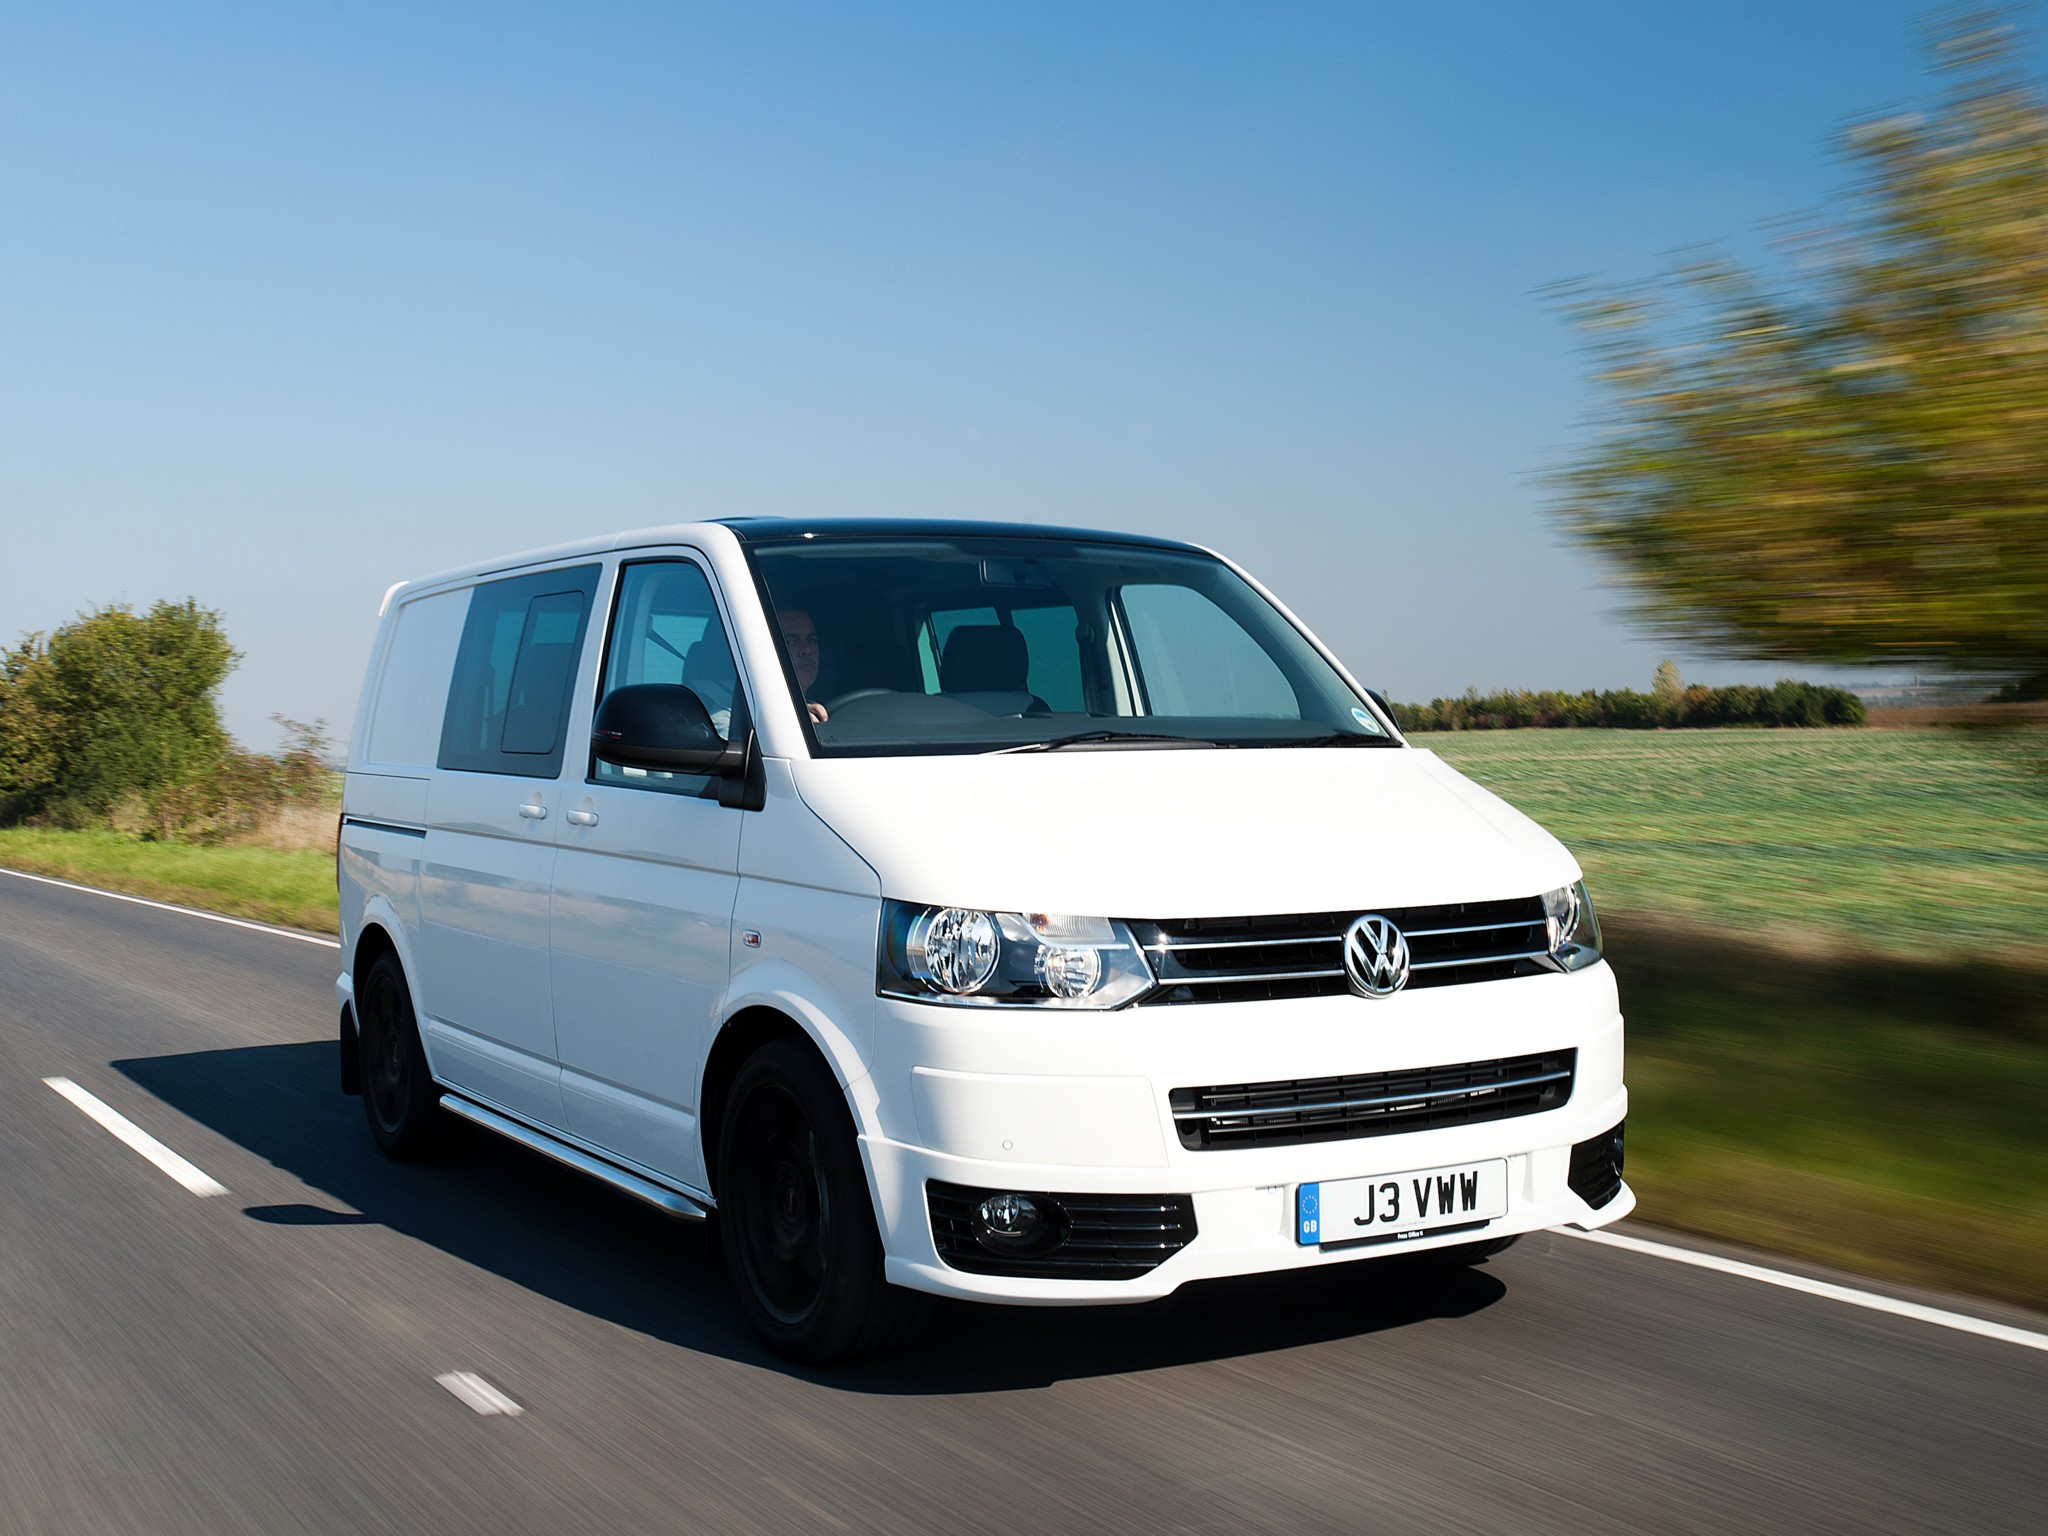 volkswagen t5 transporter combi sportline uk 2011 volkswagen t5 transporter combi sportline uk. Black Bedroom Furniture Sets. Home Design Ideas